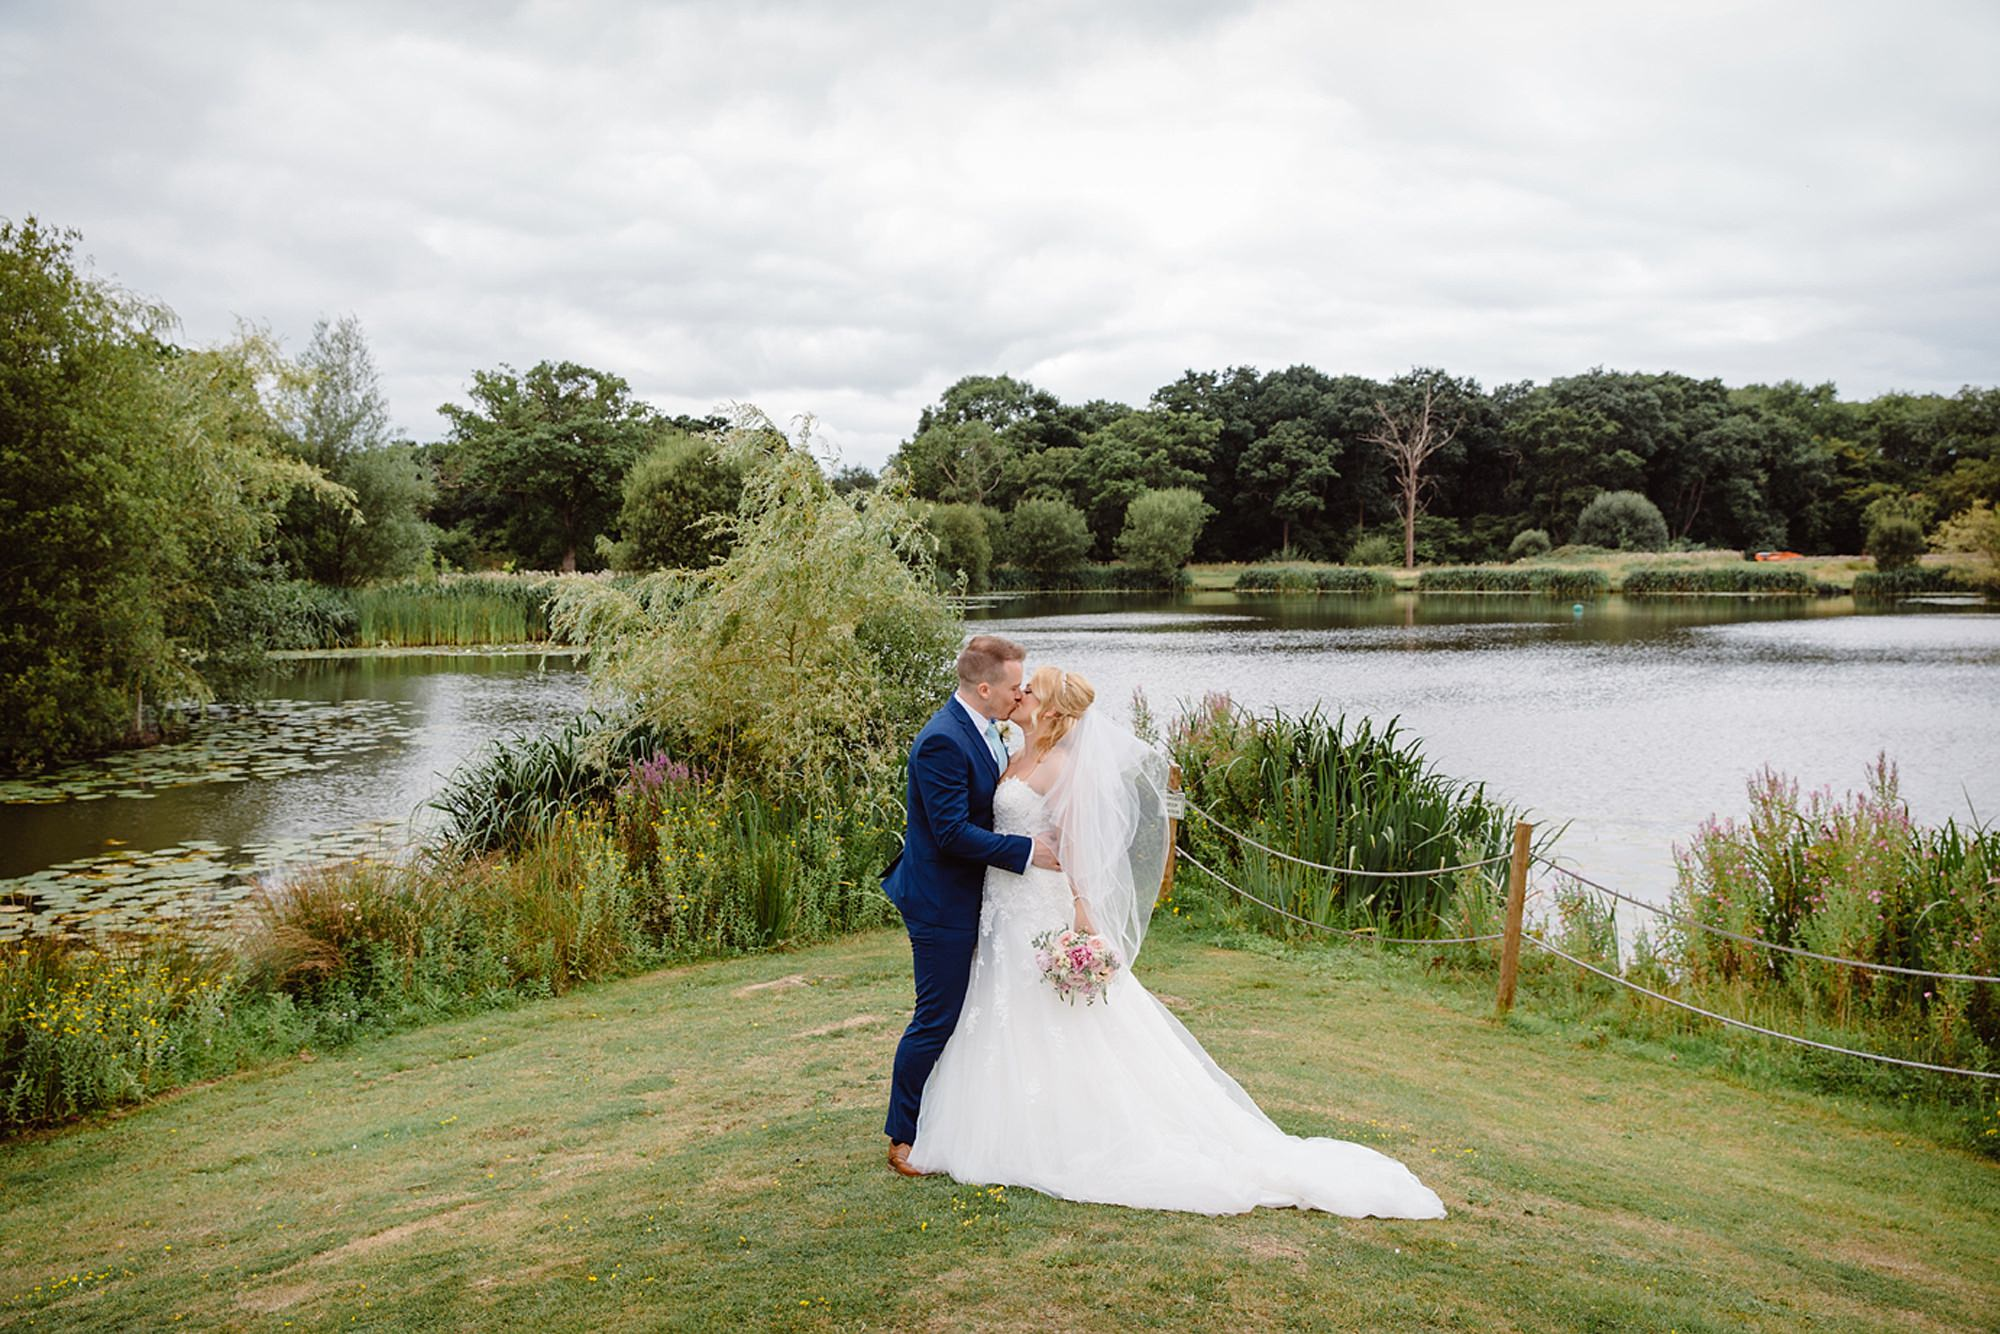 Old Greens Barn Newdigate wedding photography bride and groom by lake